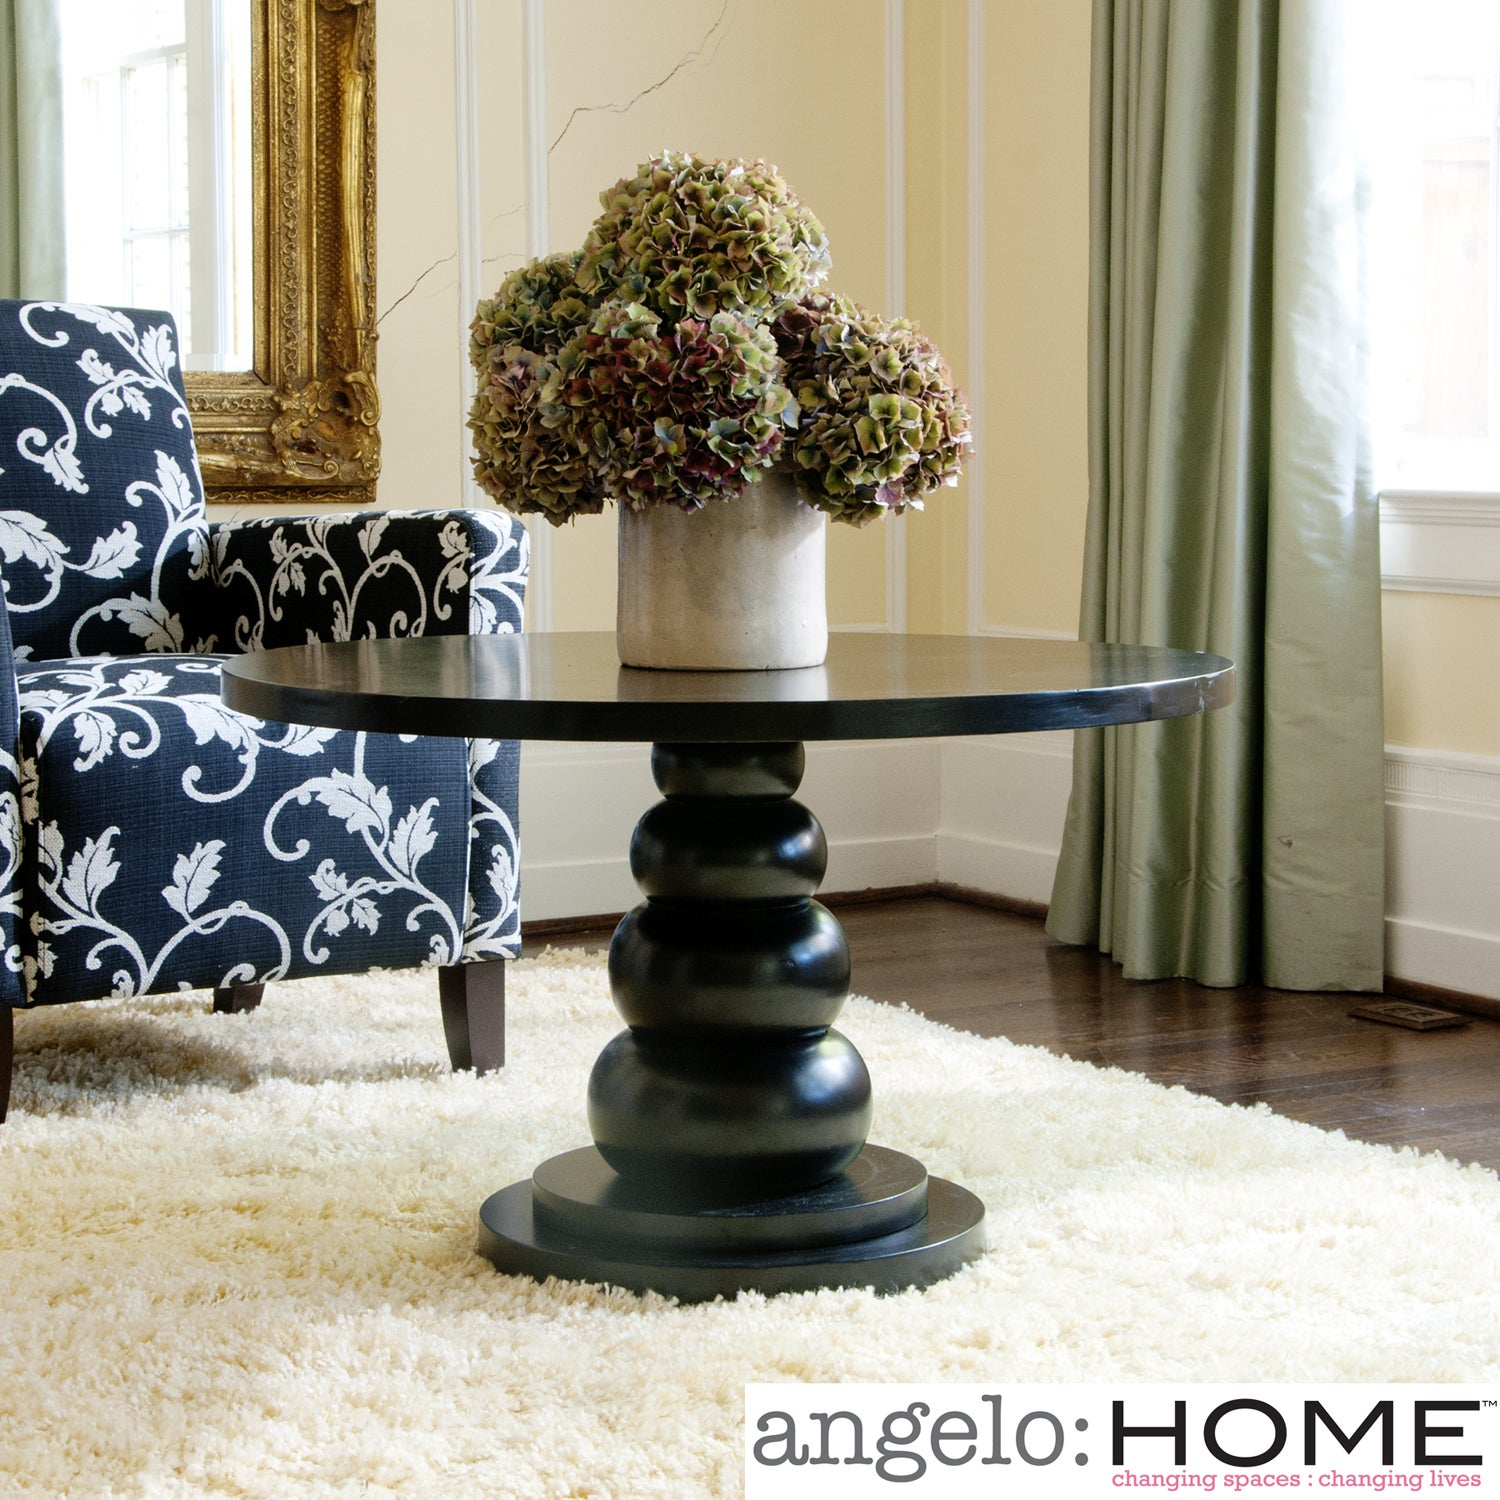 angelo:HOME Spheres Cocktail Table